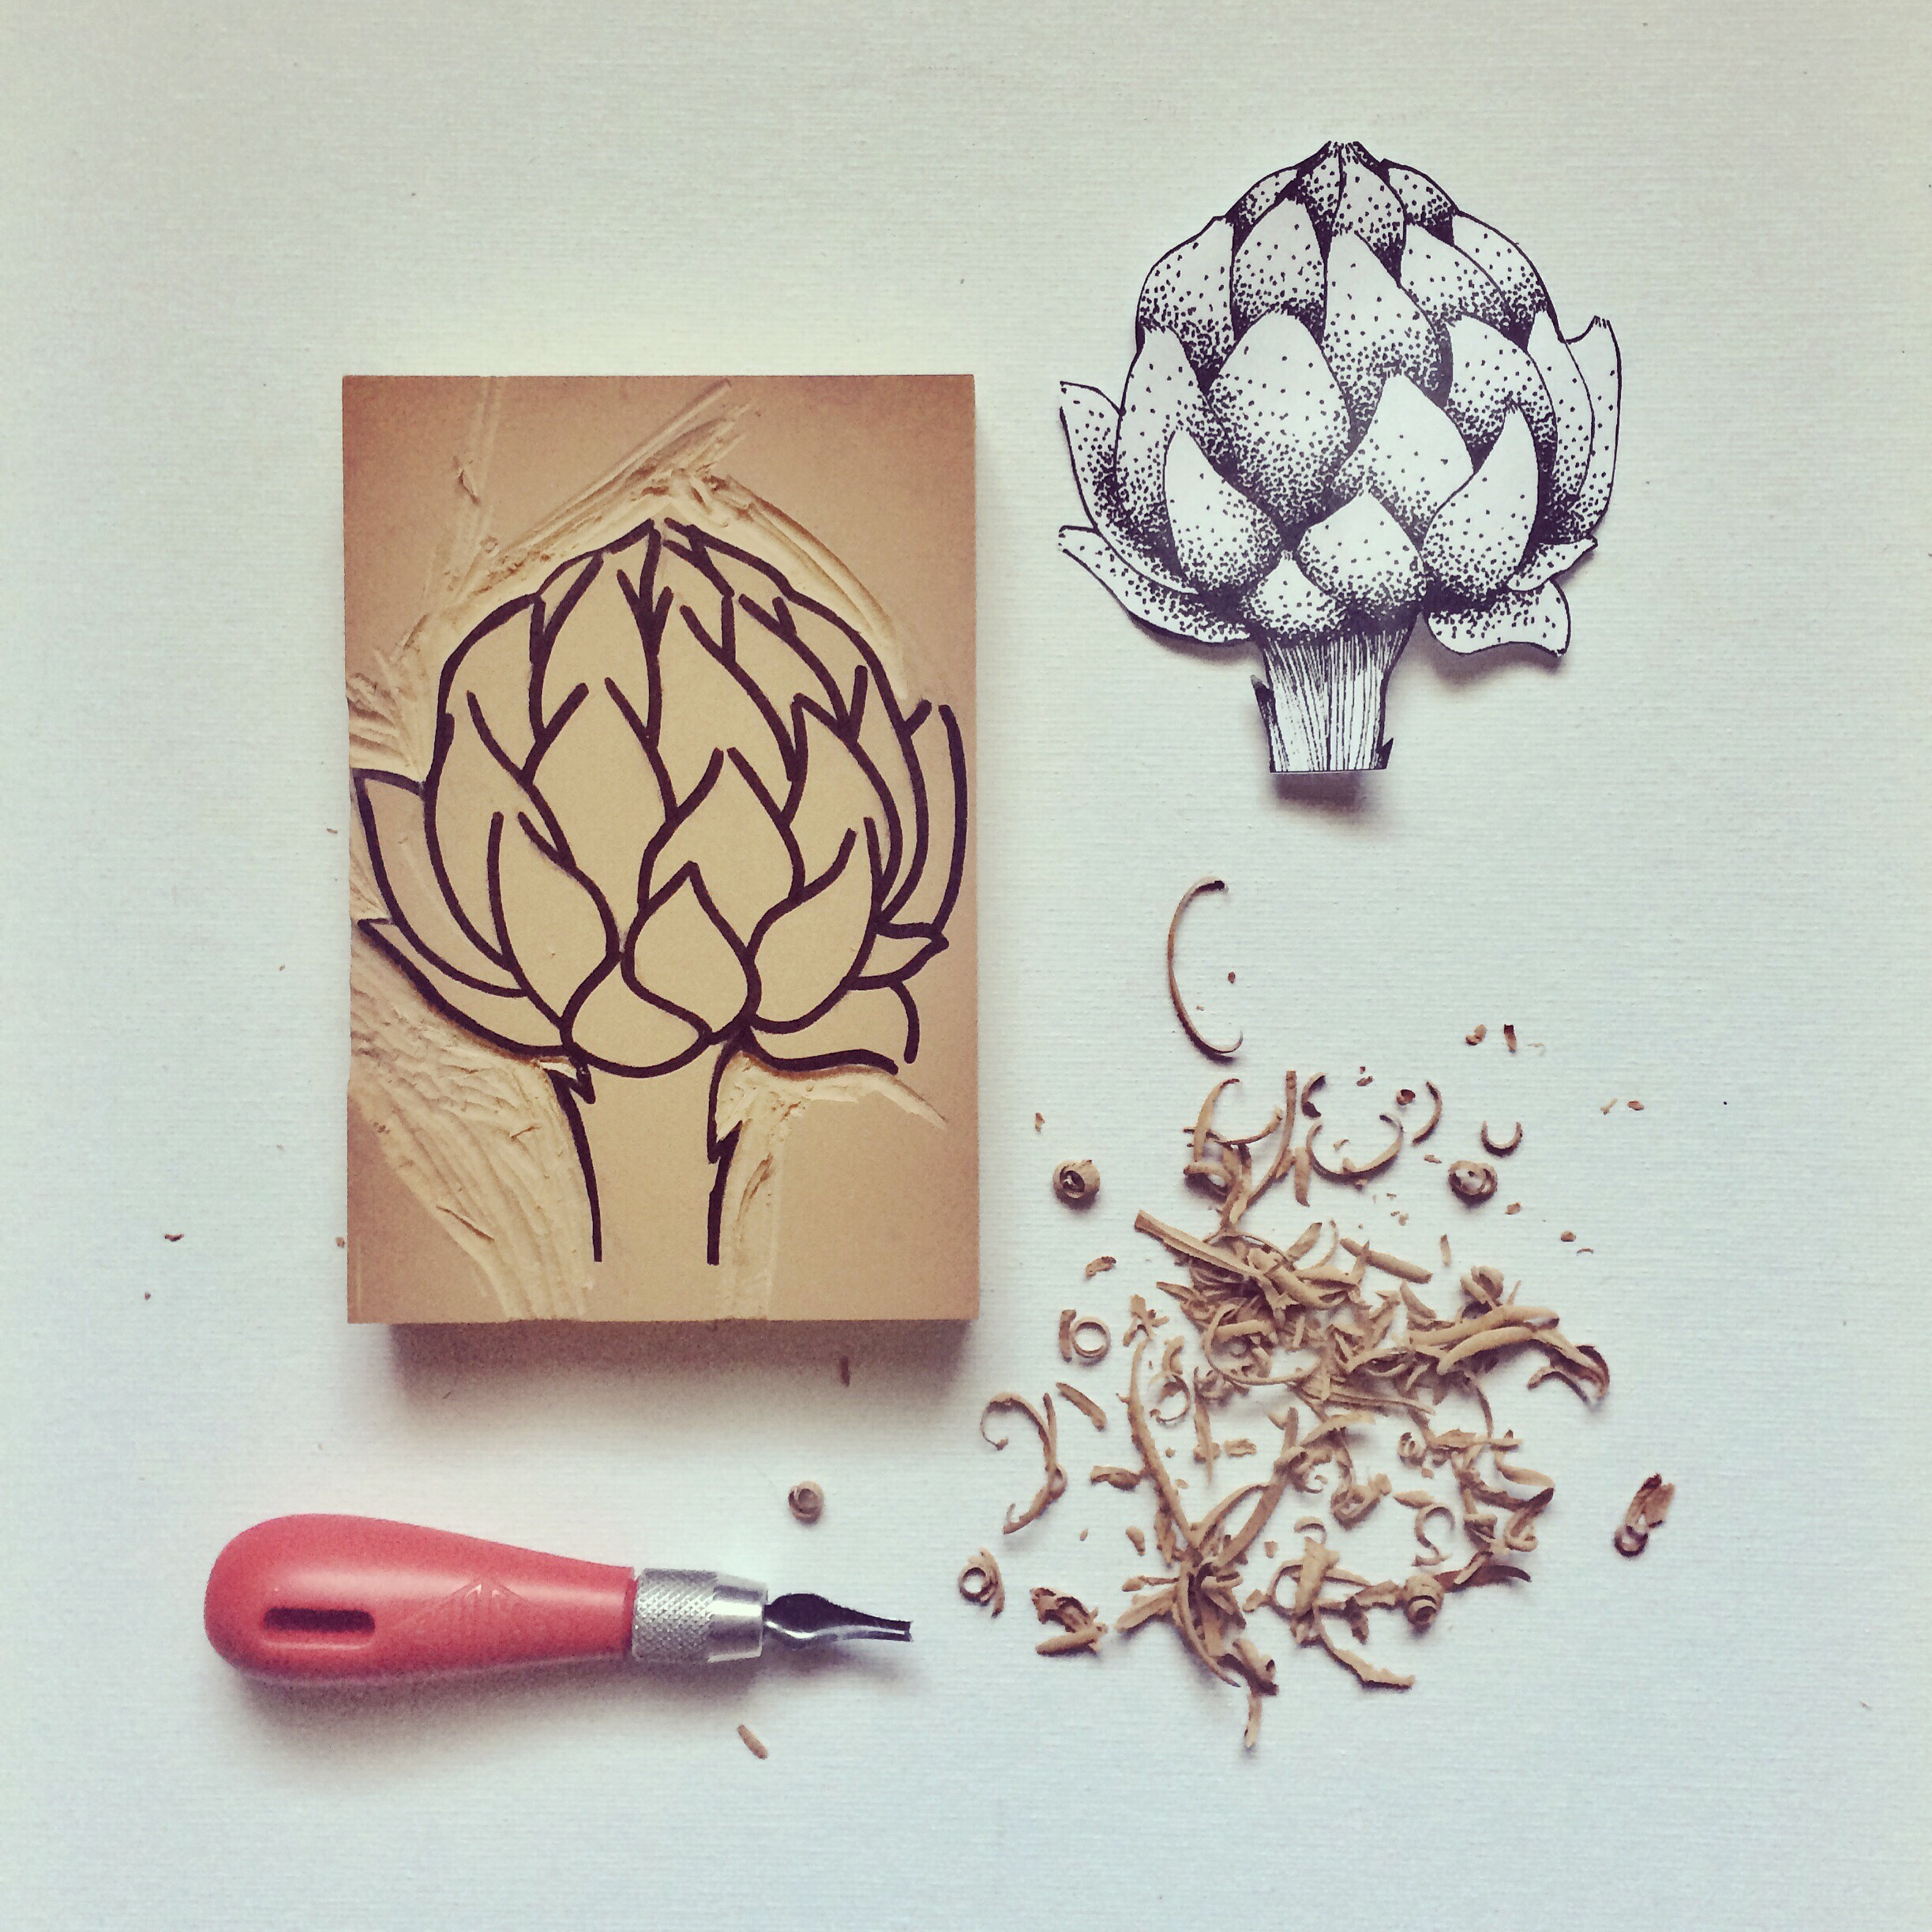 Artichoke in Process I , 2018, Linoleum Block